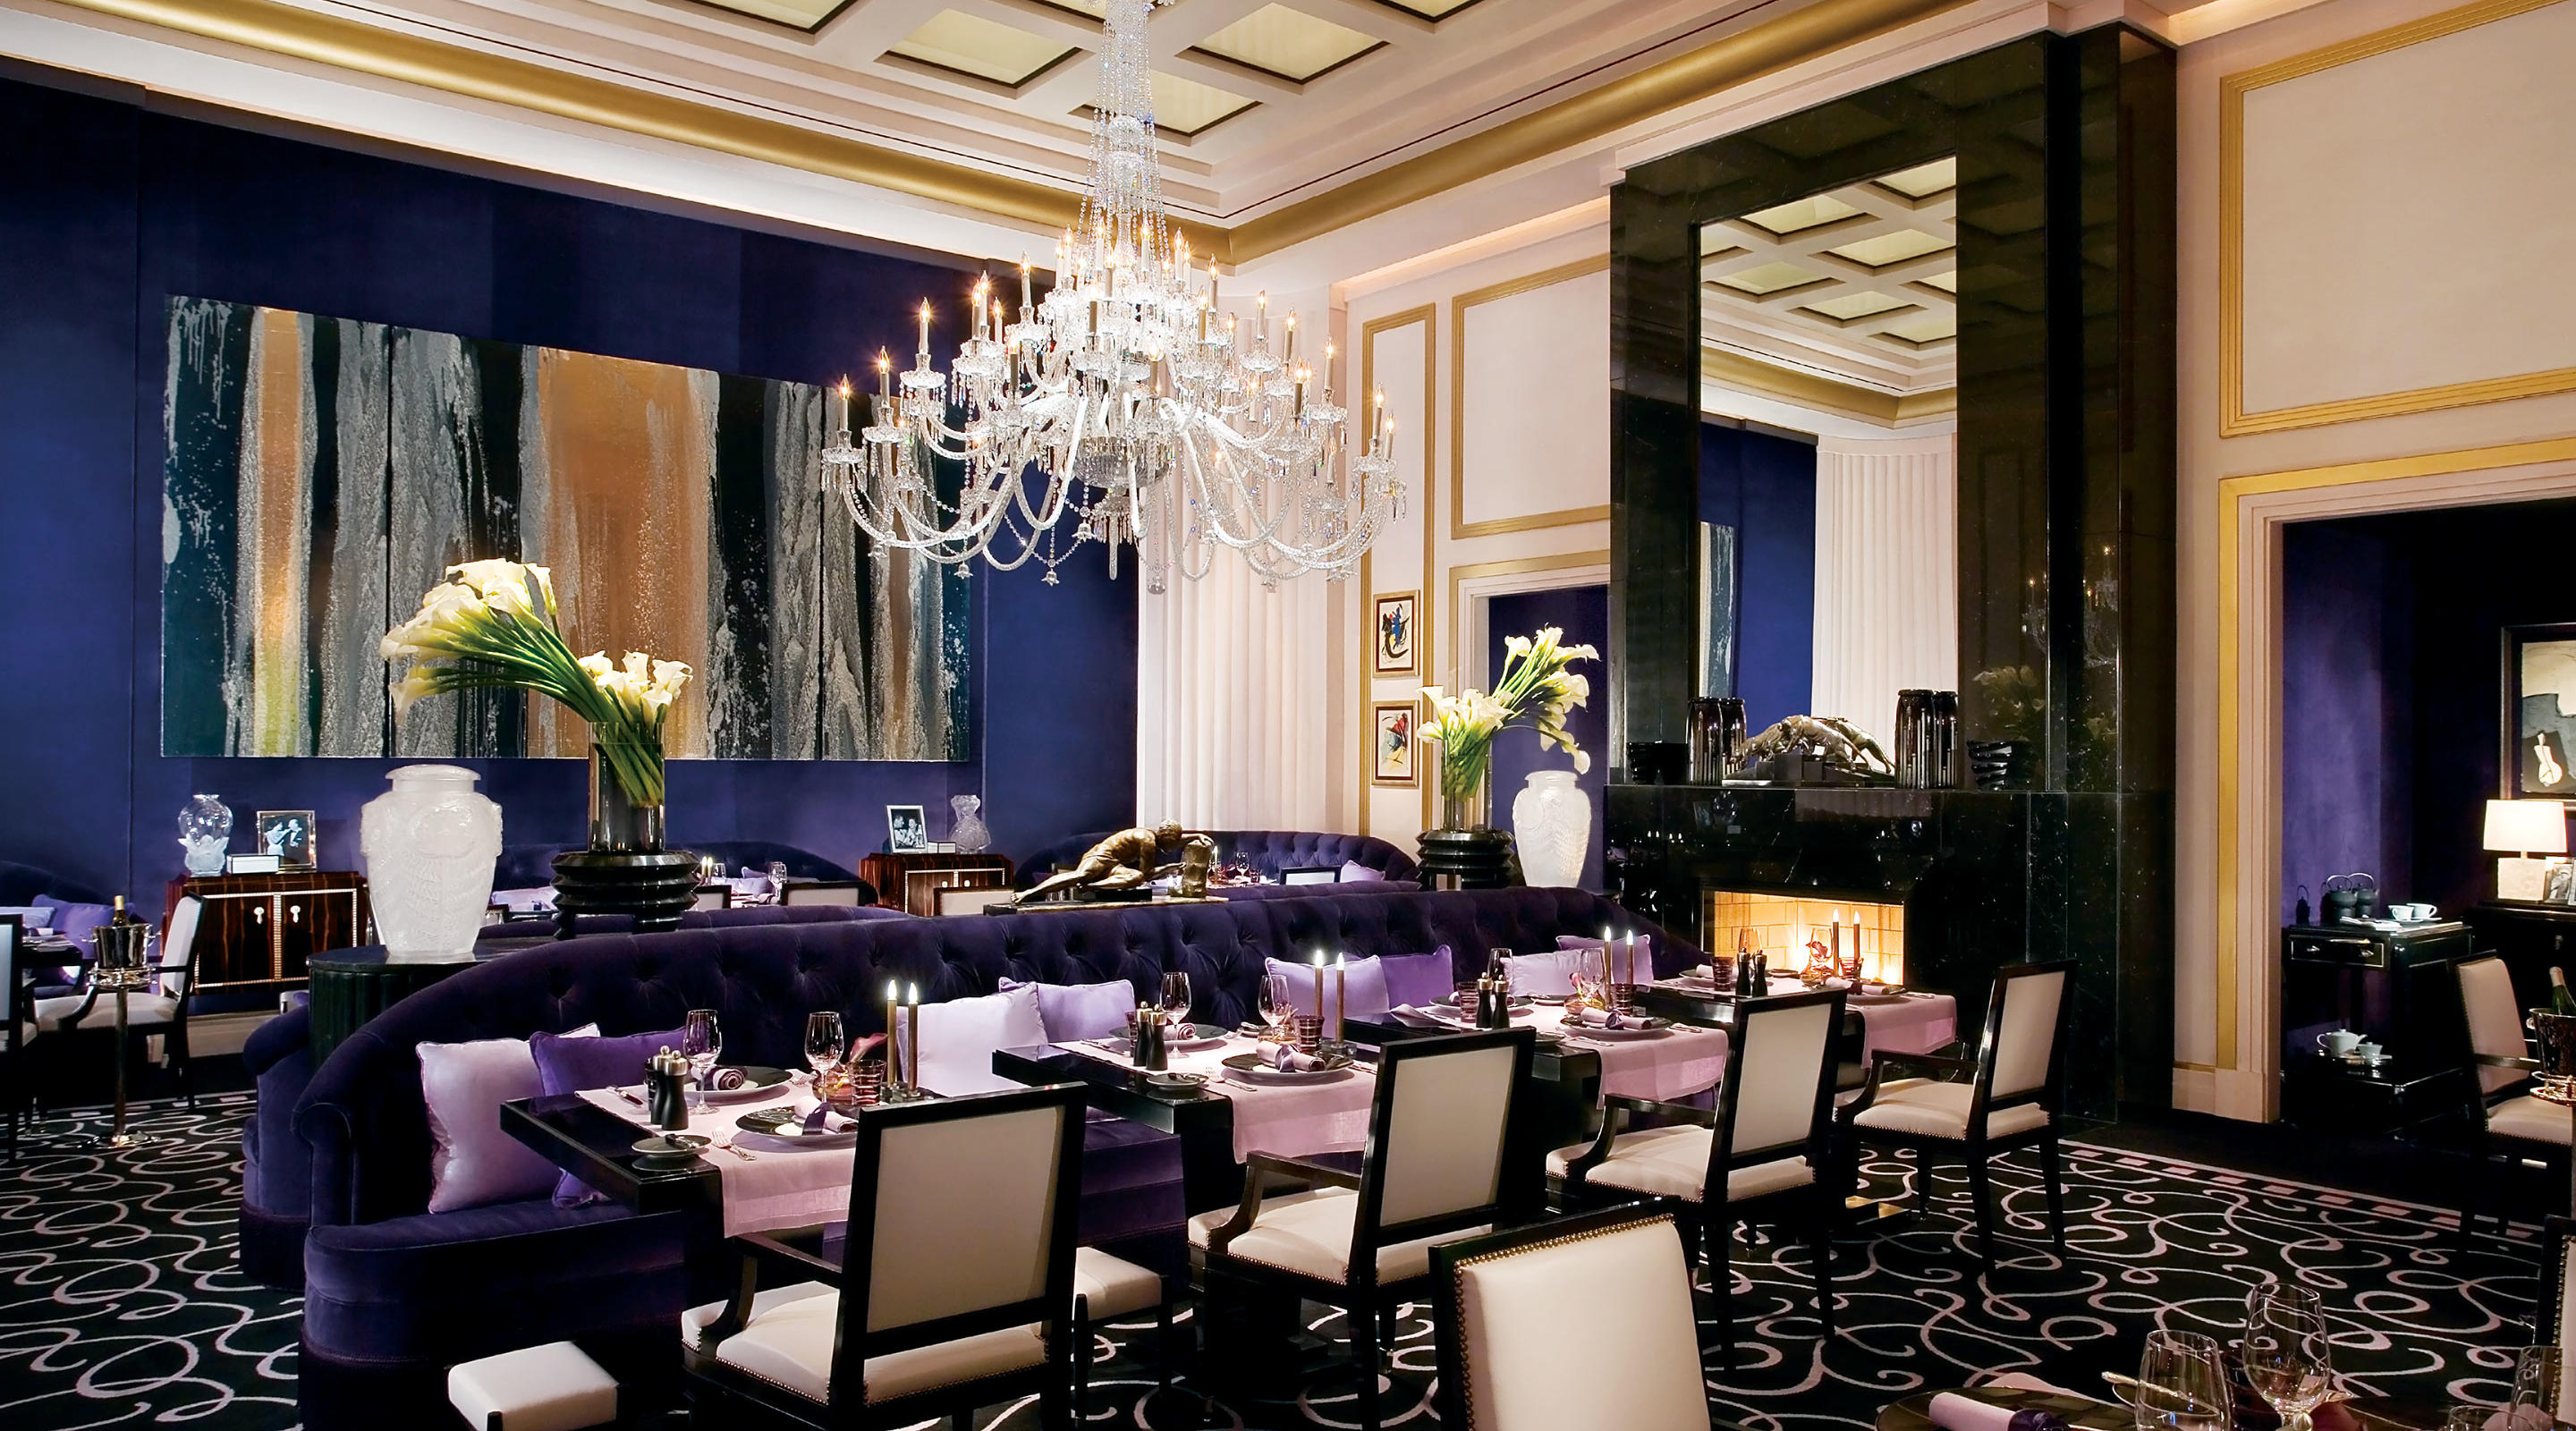 Jo l robuchon mgm grand las vegas for O bar private dining room